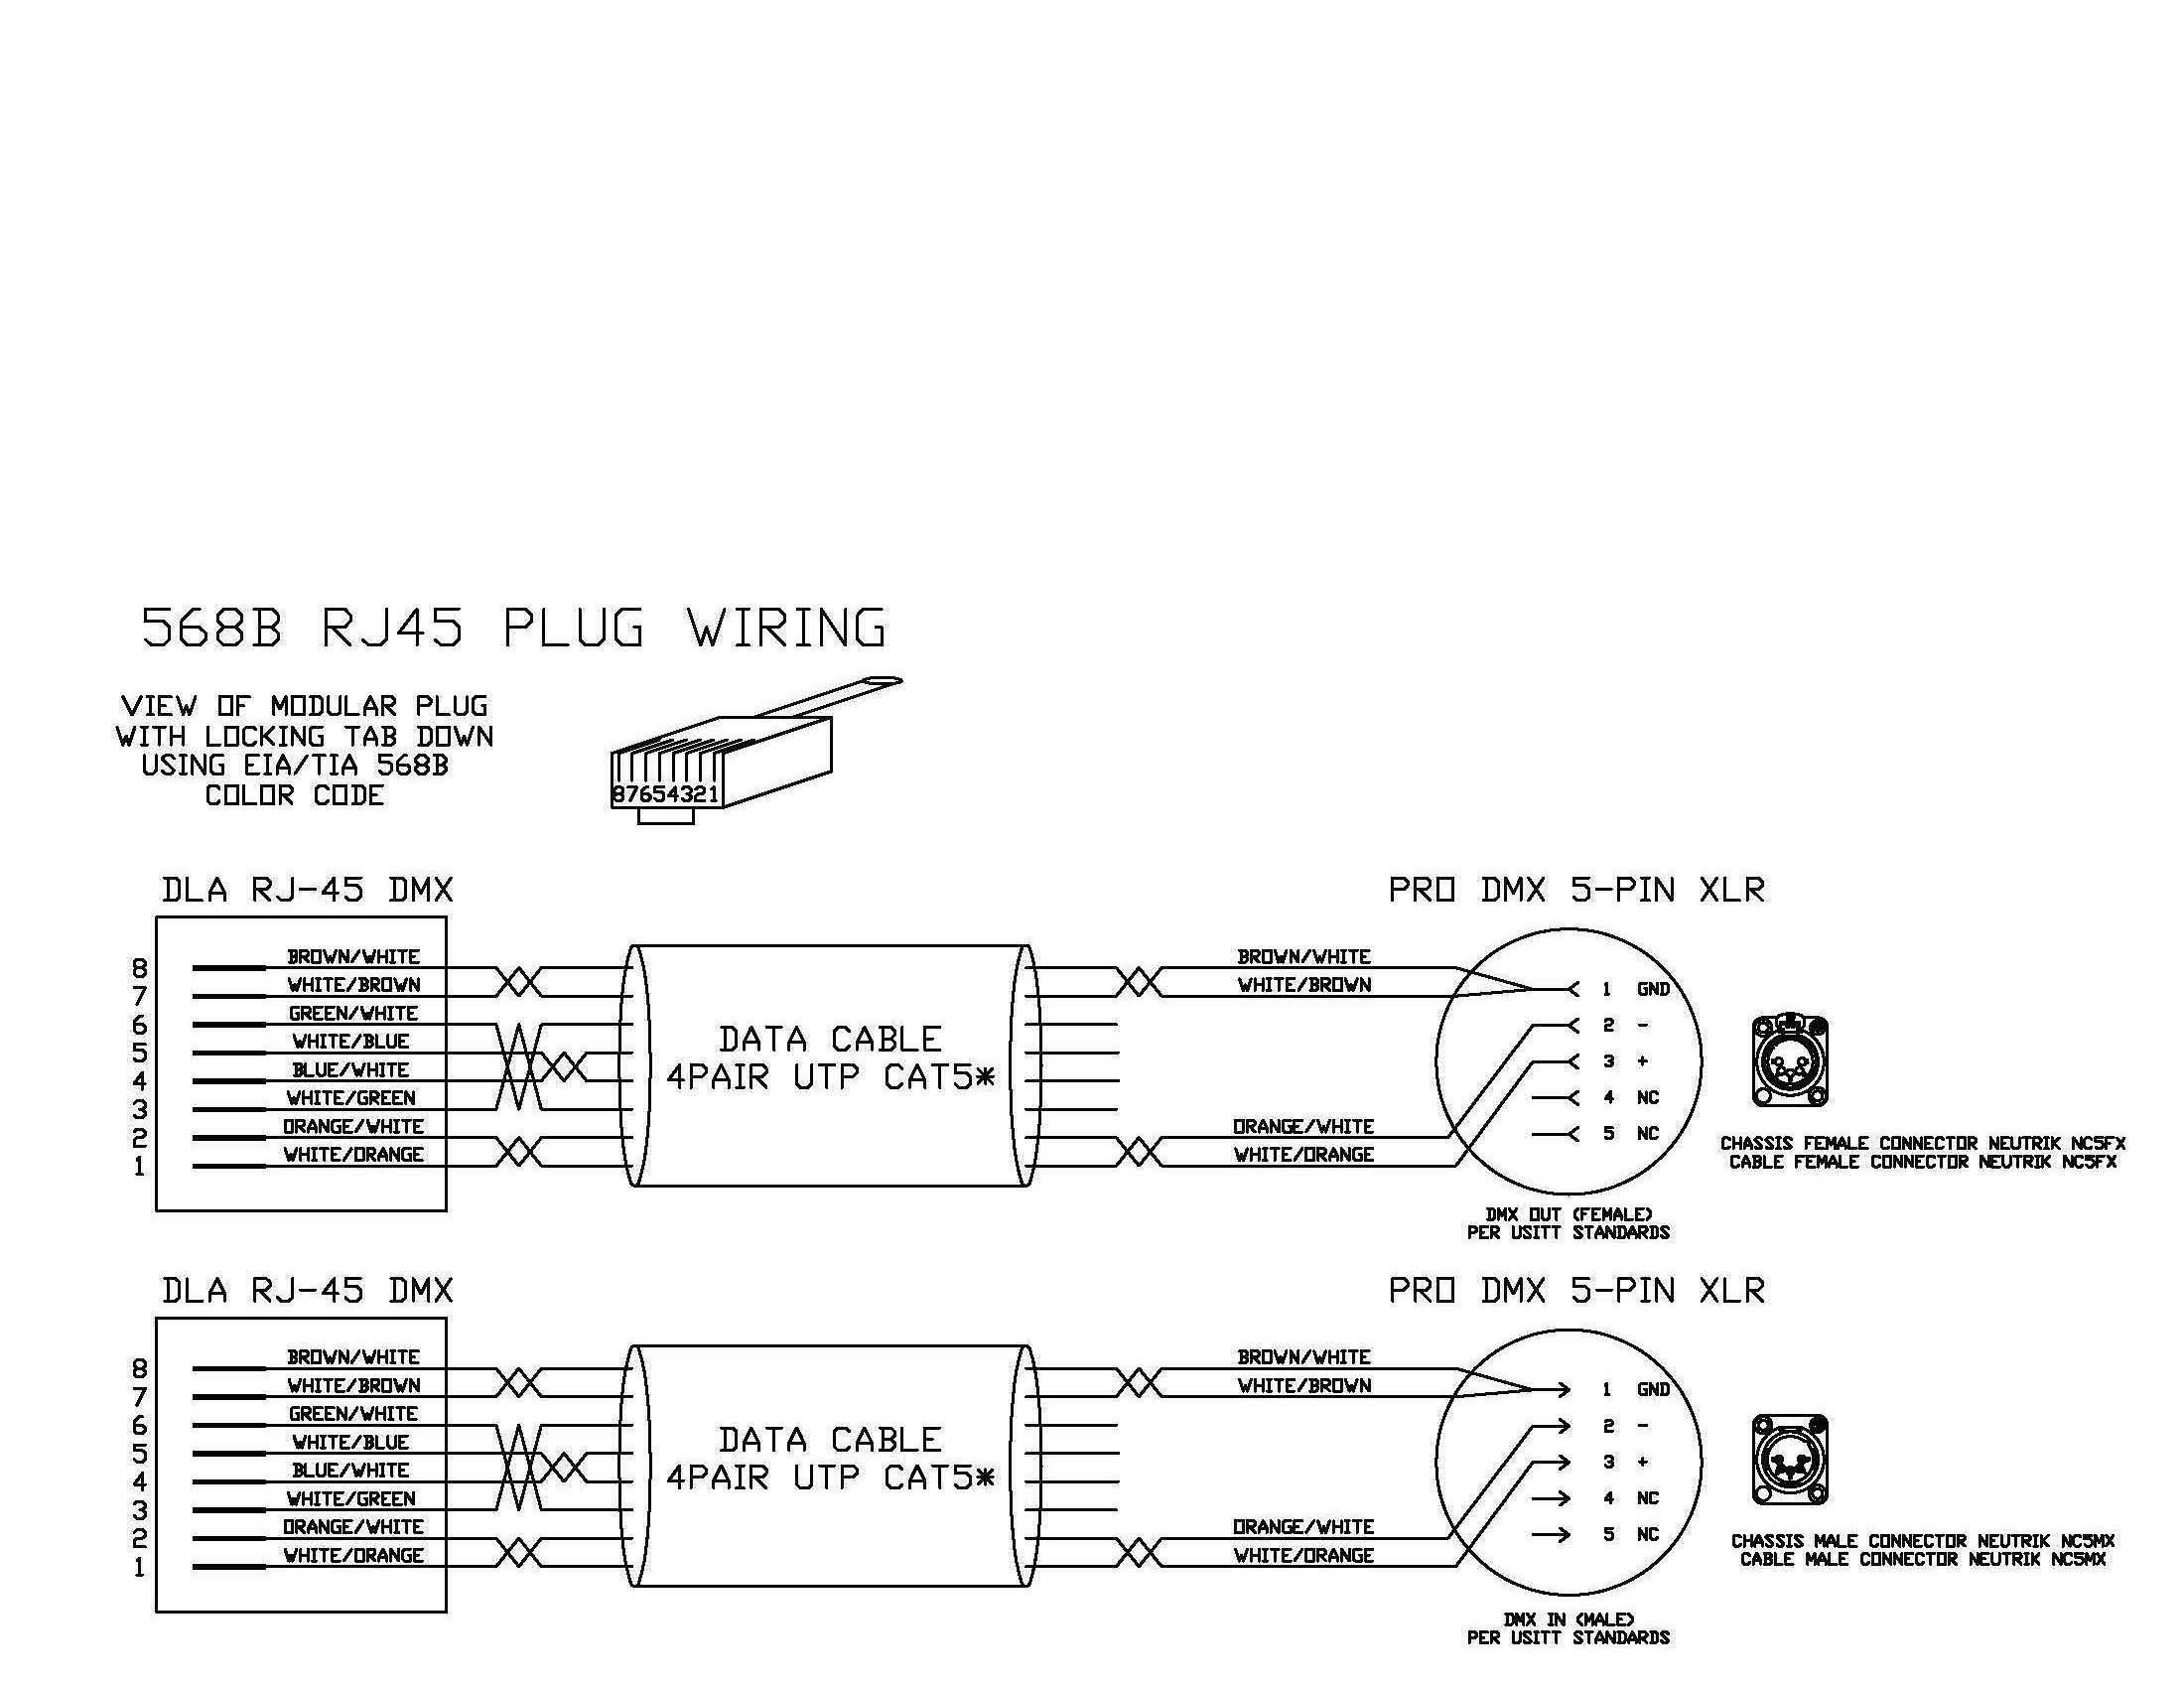 dmx rj45 wiring diagram wiring diagram third leveldmx to rj45 wiring diagram wiring diagrams img networking wiring diagram dmx rj45 wiring diagram